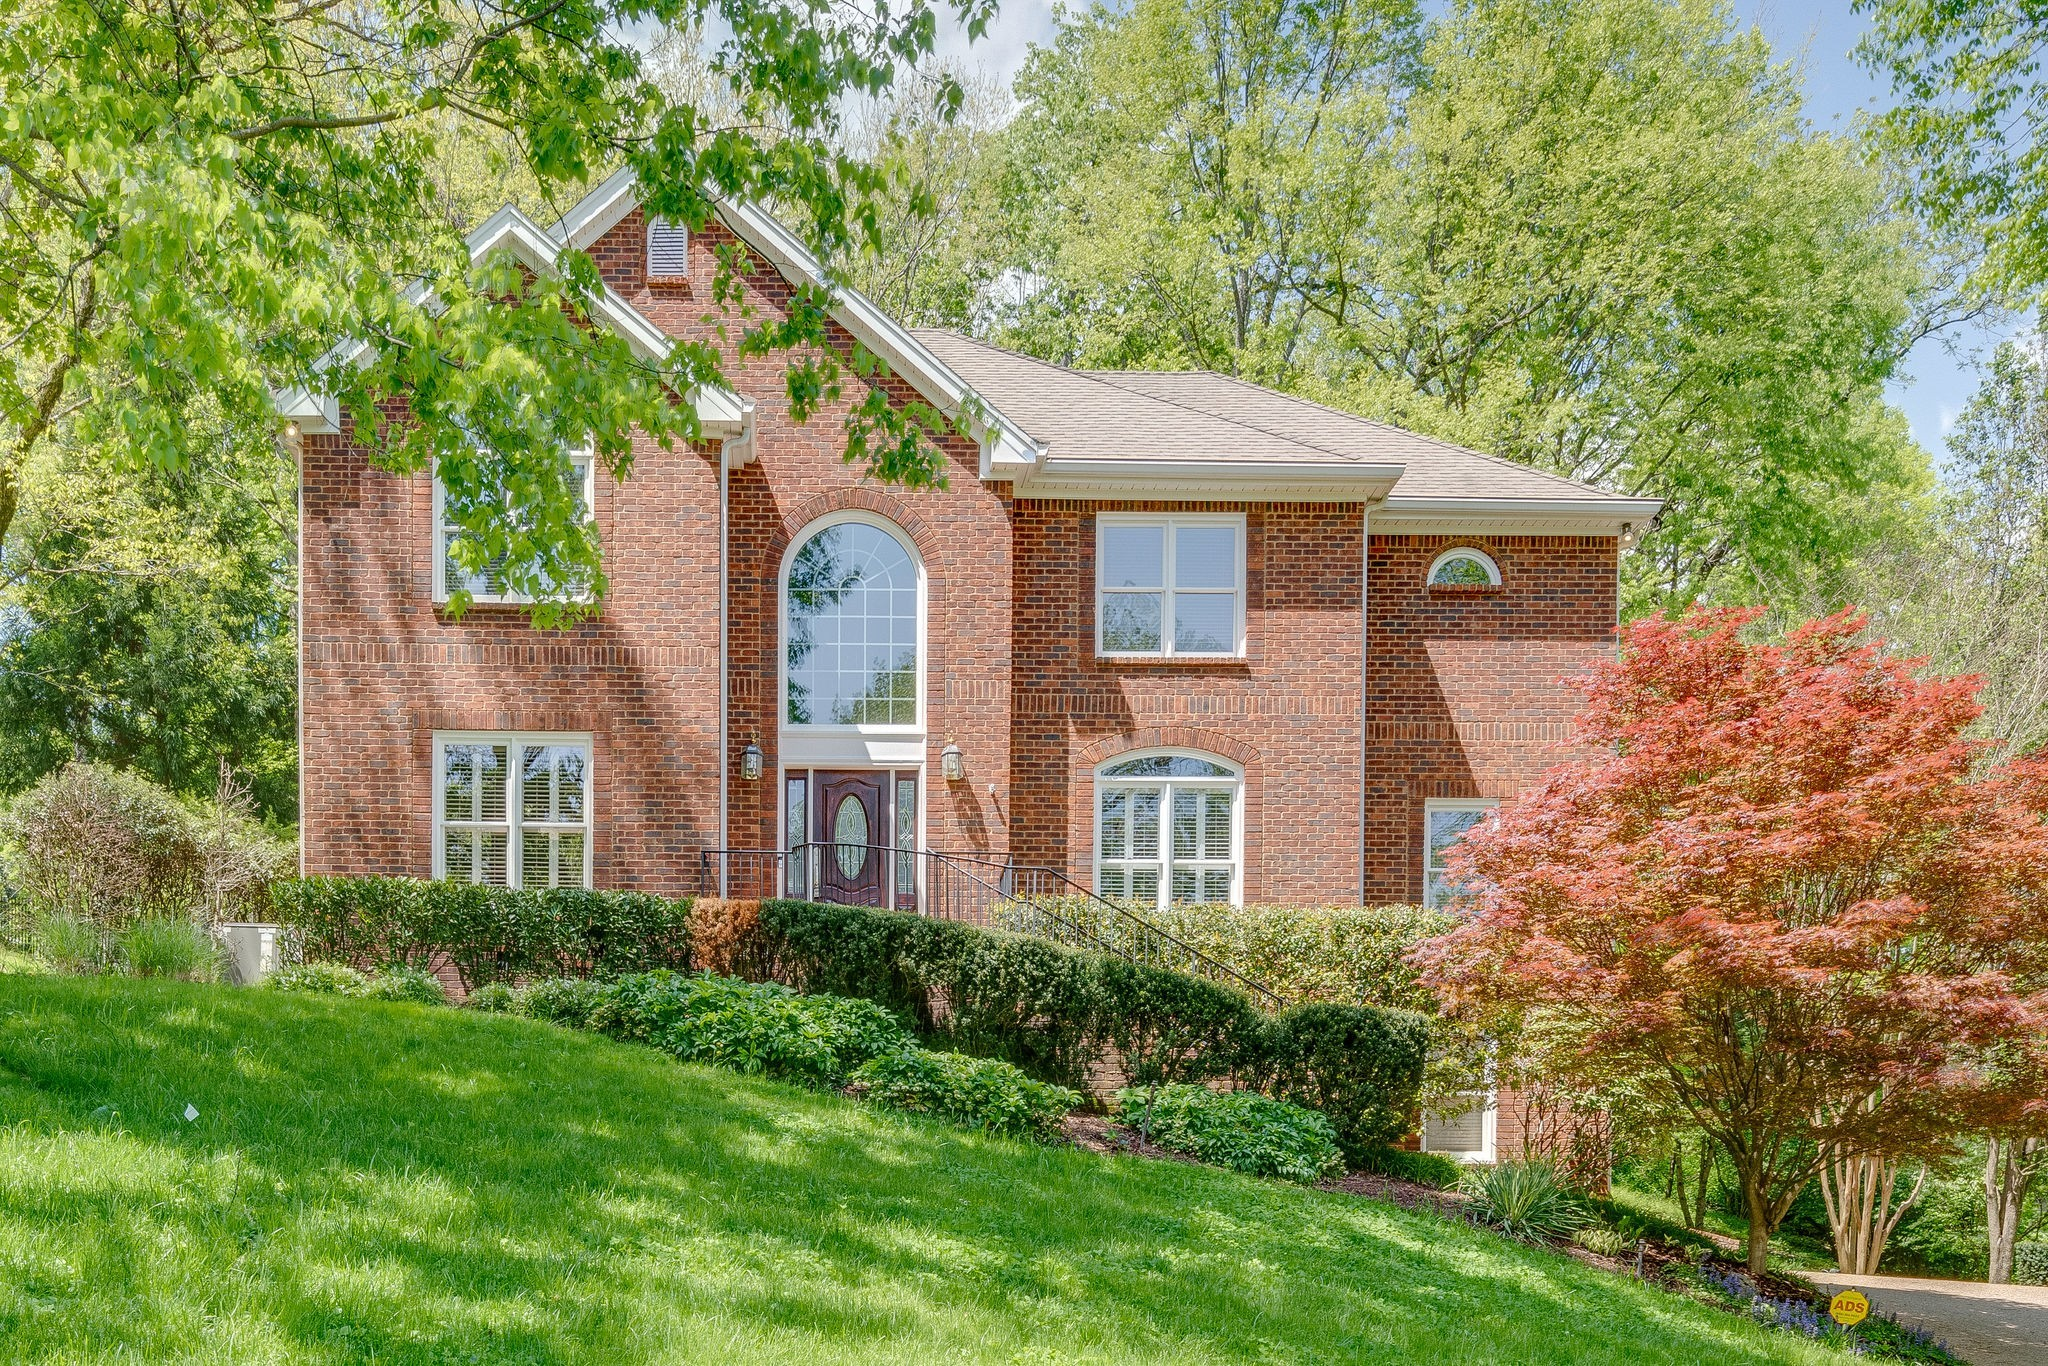 HOME BACKS TO 11th HOLE BEHIND TREES * HARDWOODS THROUGHOUT 1ST FLOOR*FABULOUS 2 STORY DEN * GREAT VIEWS FROM FRONT & BACK! * LOVELY MOULDINGS AND CABINETRY * BACK STAIRS, WET BAR, CUSTOM SILHOUETTE SHADES, BLINDS, SHUTTERS AND FISH POND W/ WATERFALL*MUST SEE!